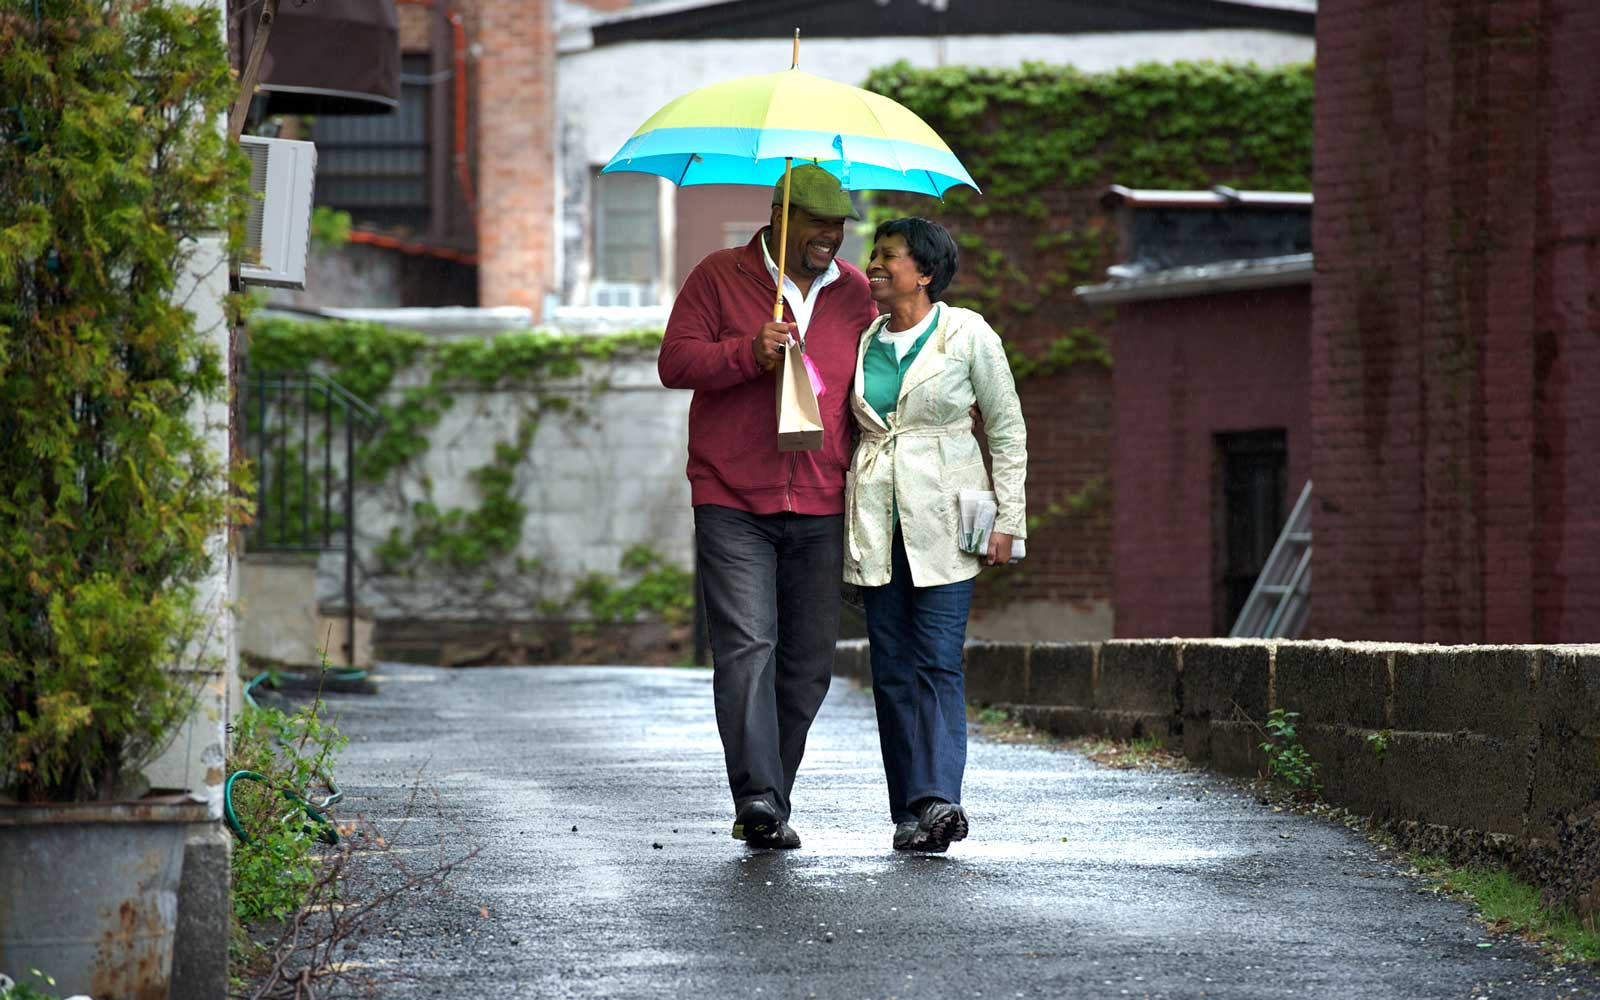 Couple walking and smiling together.